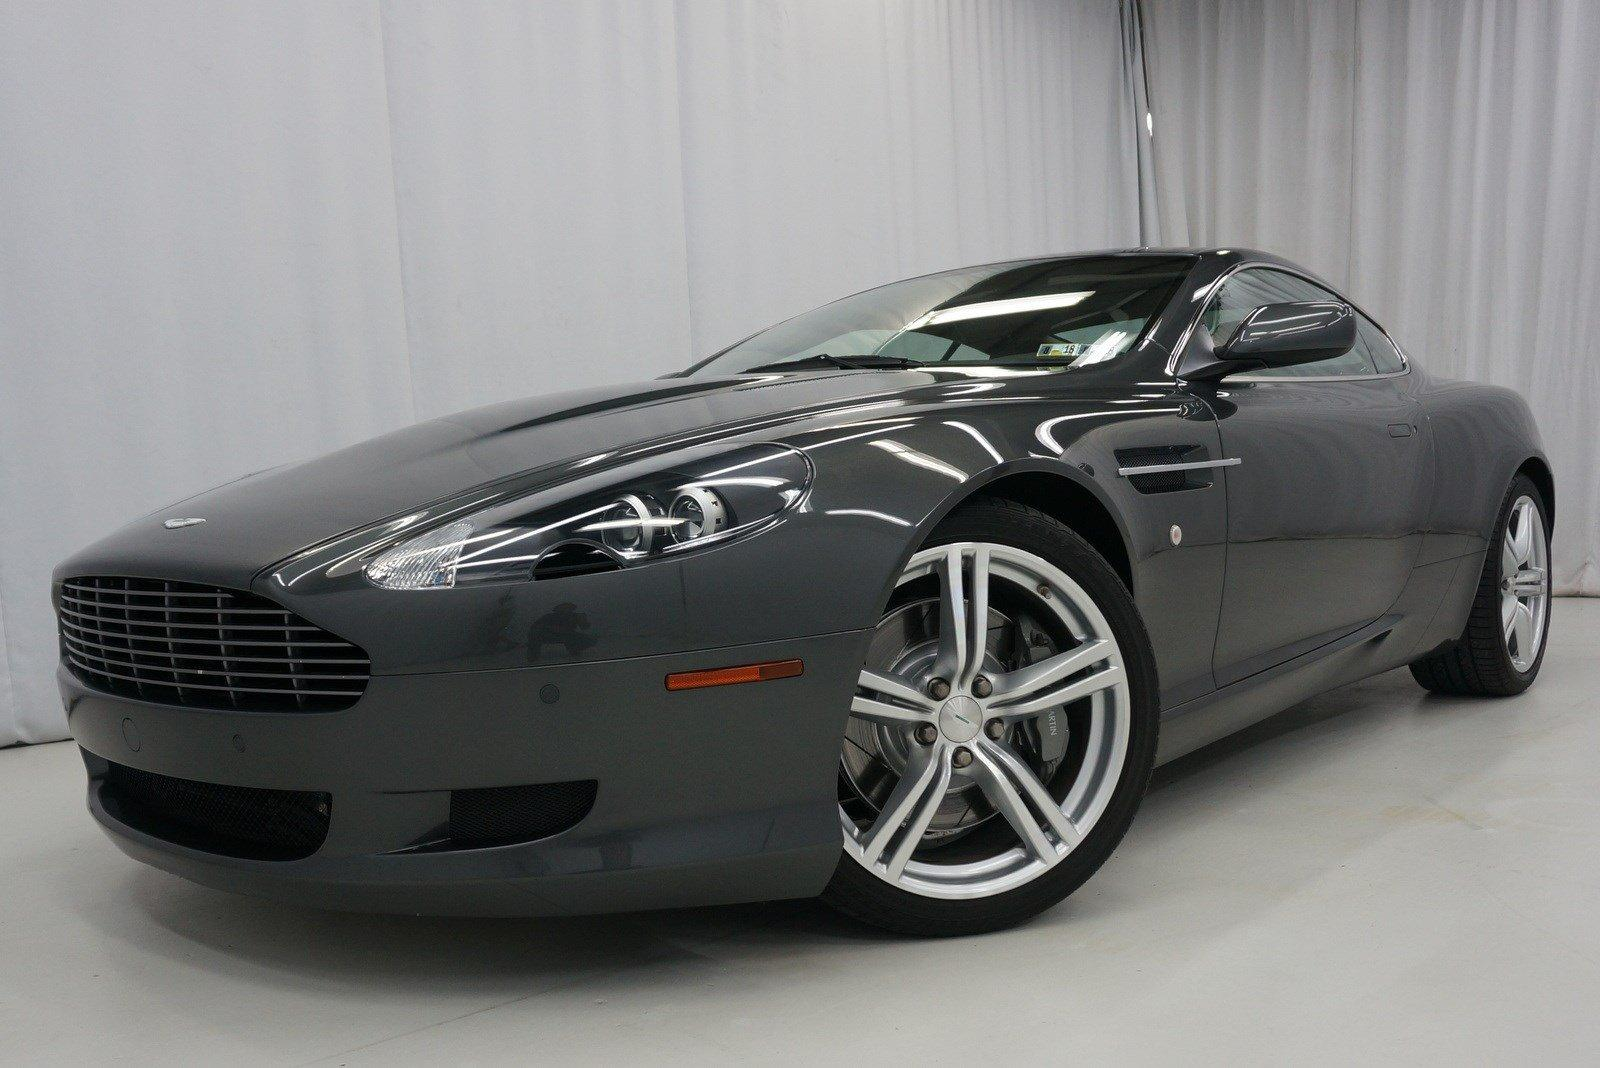 2007 Aston Martin Db9 Stock Ga08920 For Sale Near King Of Prussia